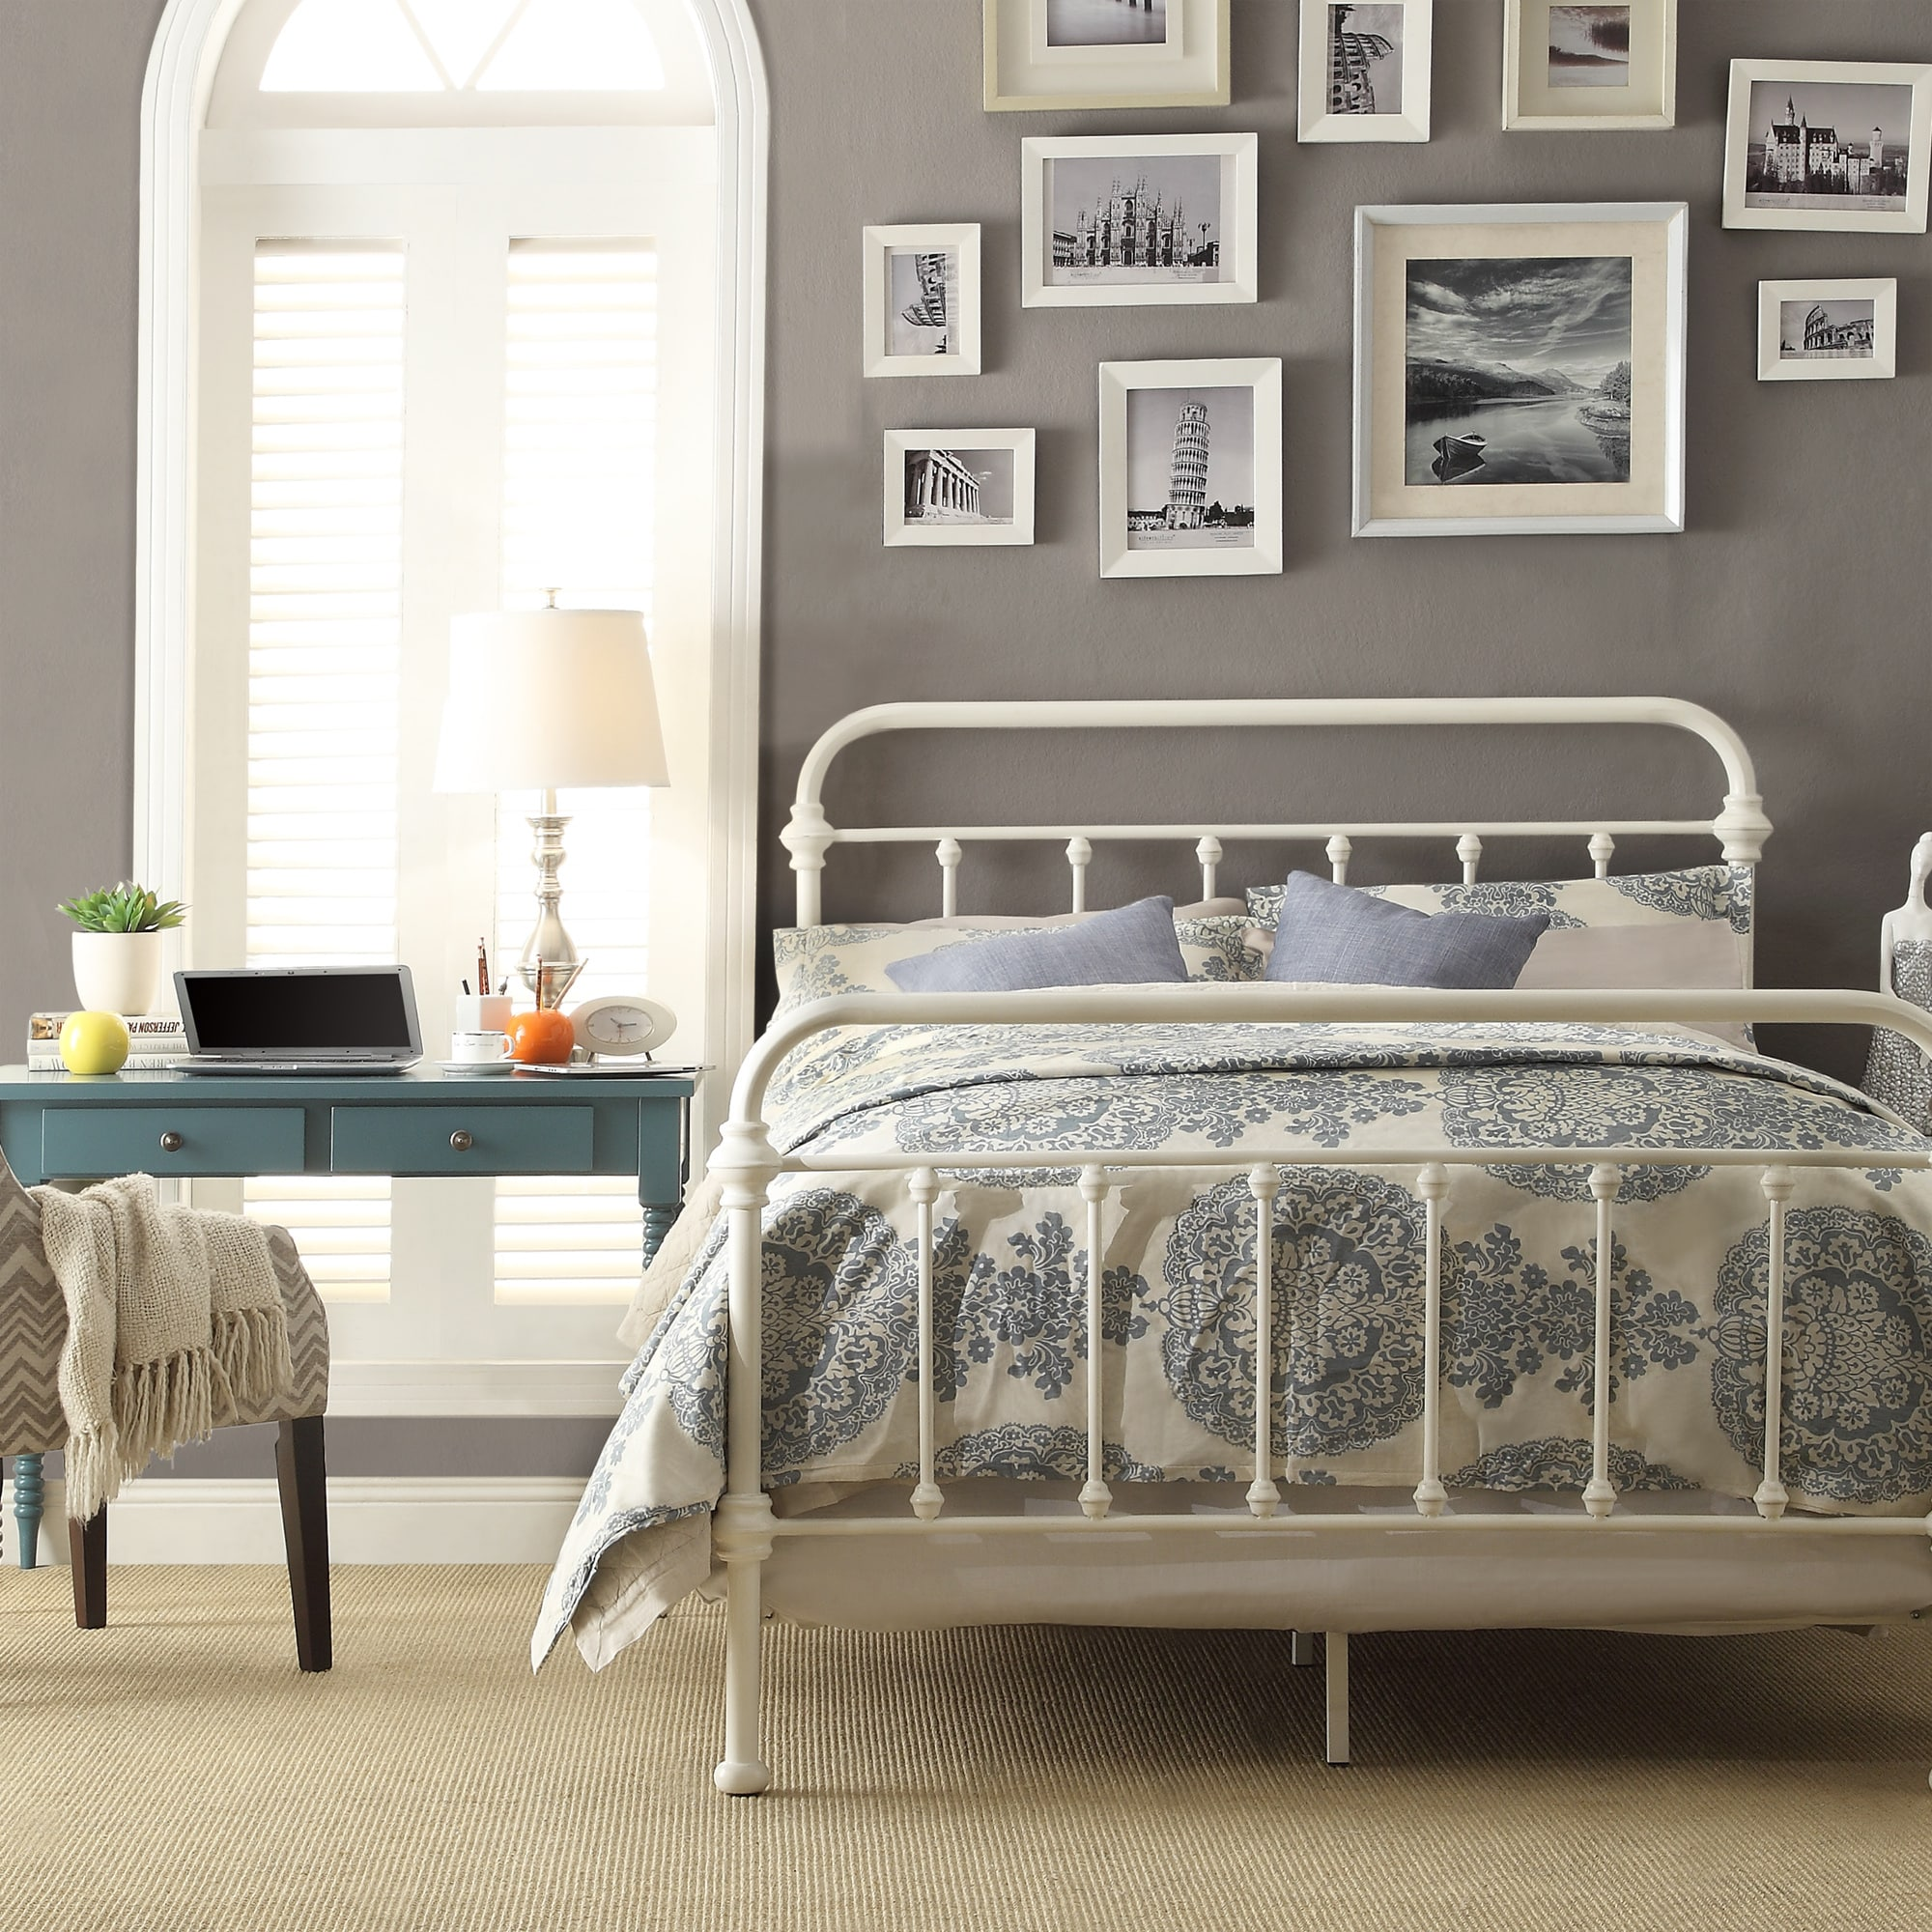 Giselle Antique White Graceful Lines Victorian Iron Metal Bed by iNSPIRE Q  Classic | Overstock.